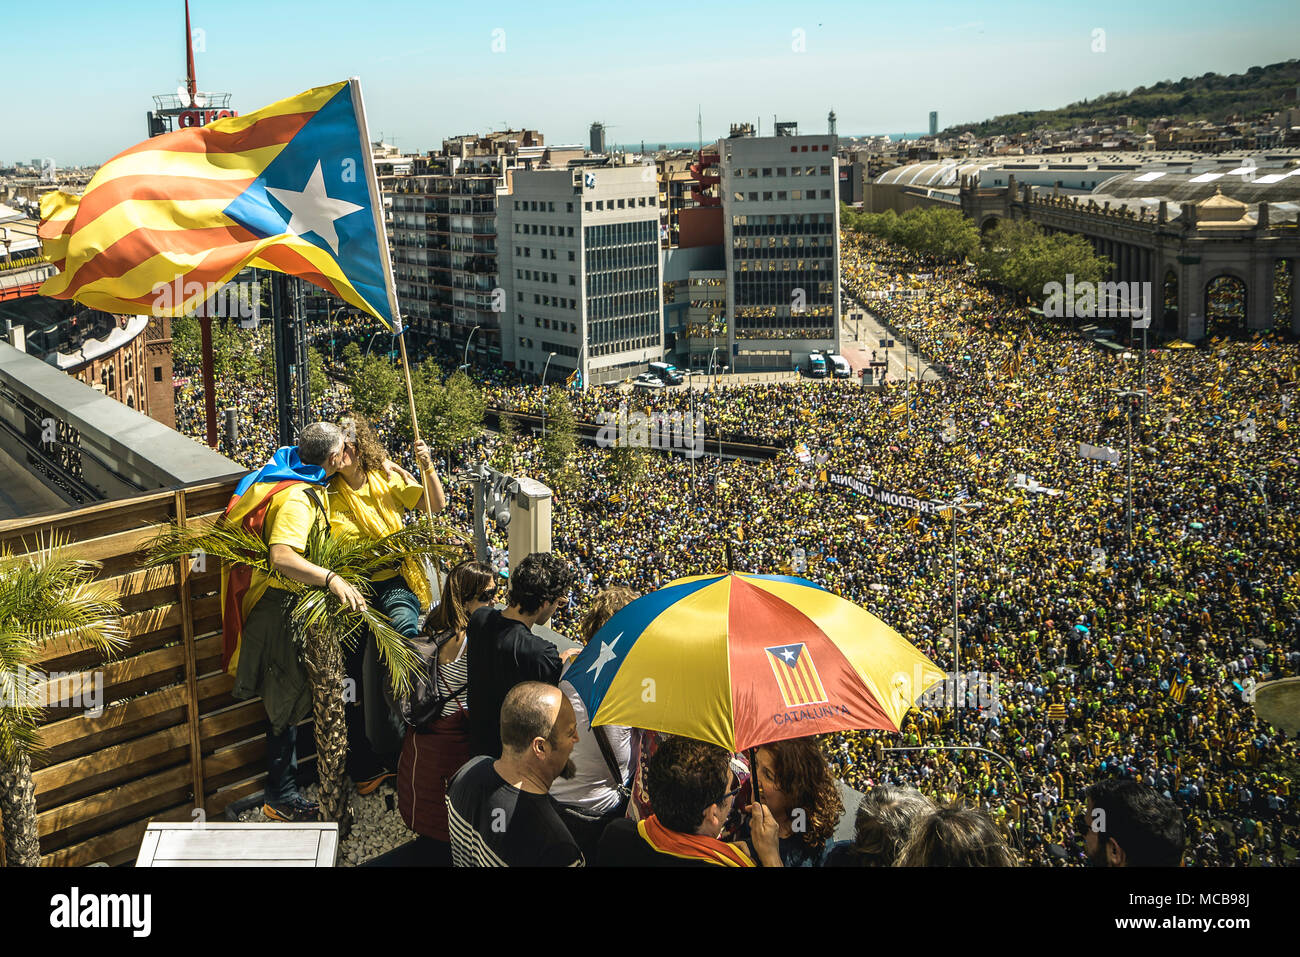 Barcelona, Spain. 15 April, 2018: Pro-independence Catalans fill Barcelona's Avenida del Prallel waving flags and shouting slogans during a demonstration for the release of jailed pro-independence politicians Credit: Matthias Oesterle/Alamy Live News - Stock Image